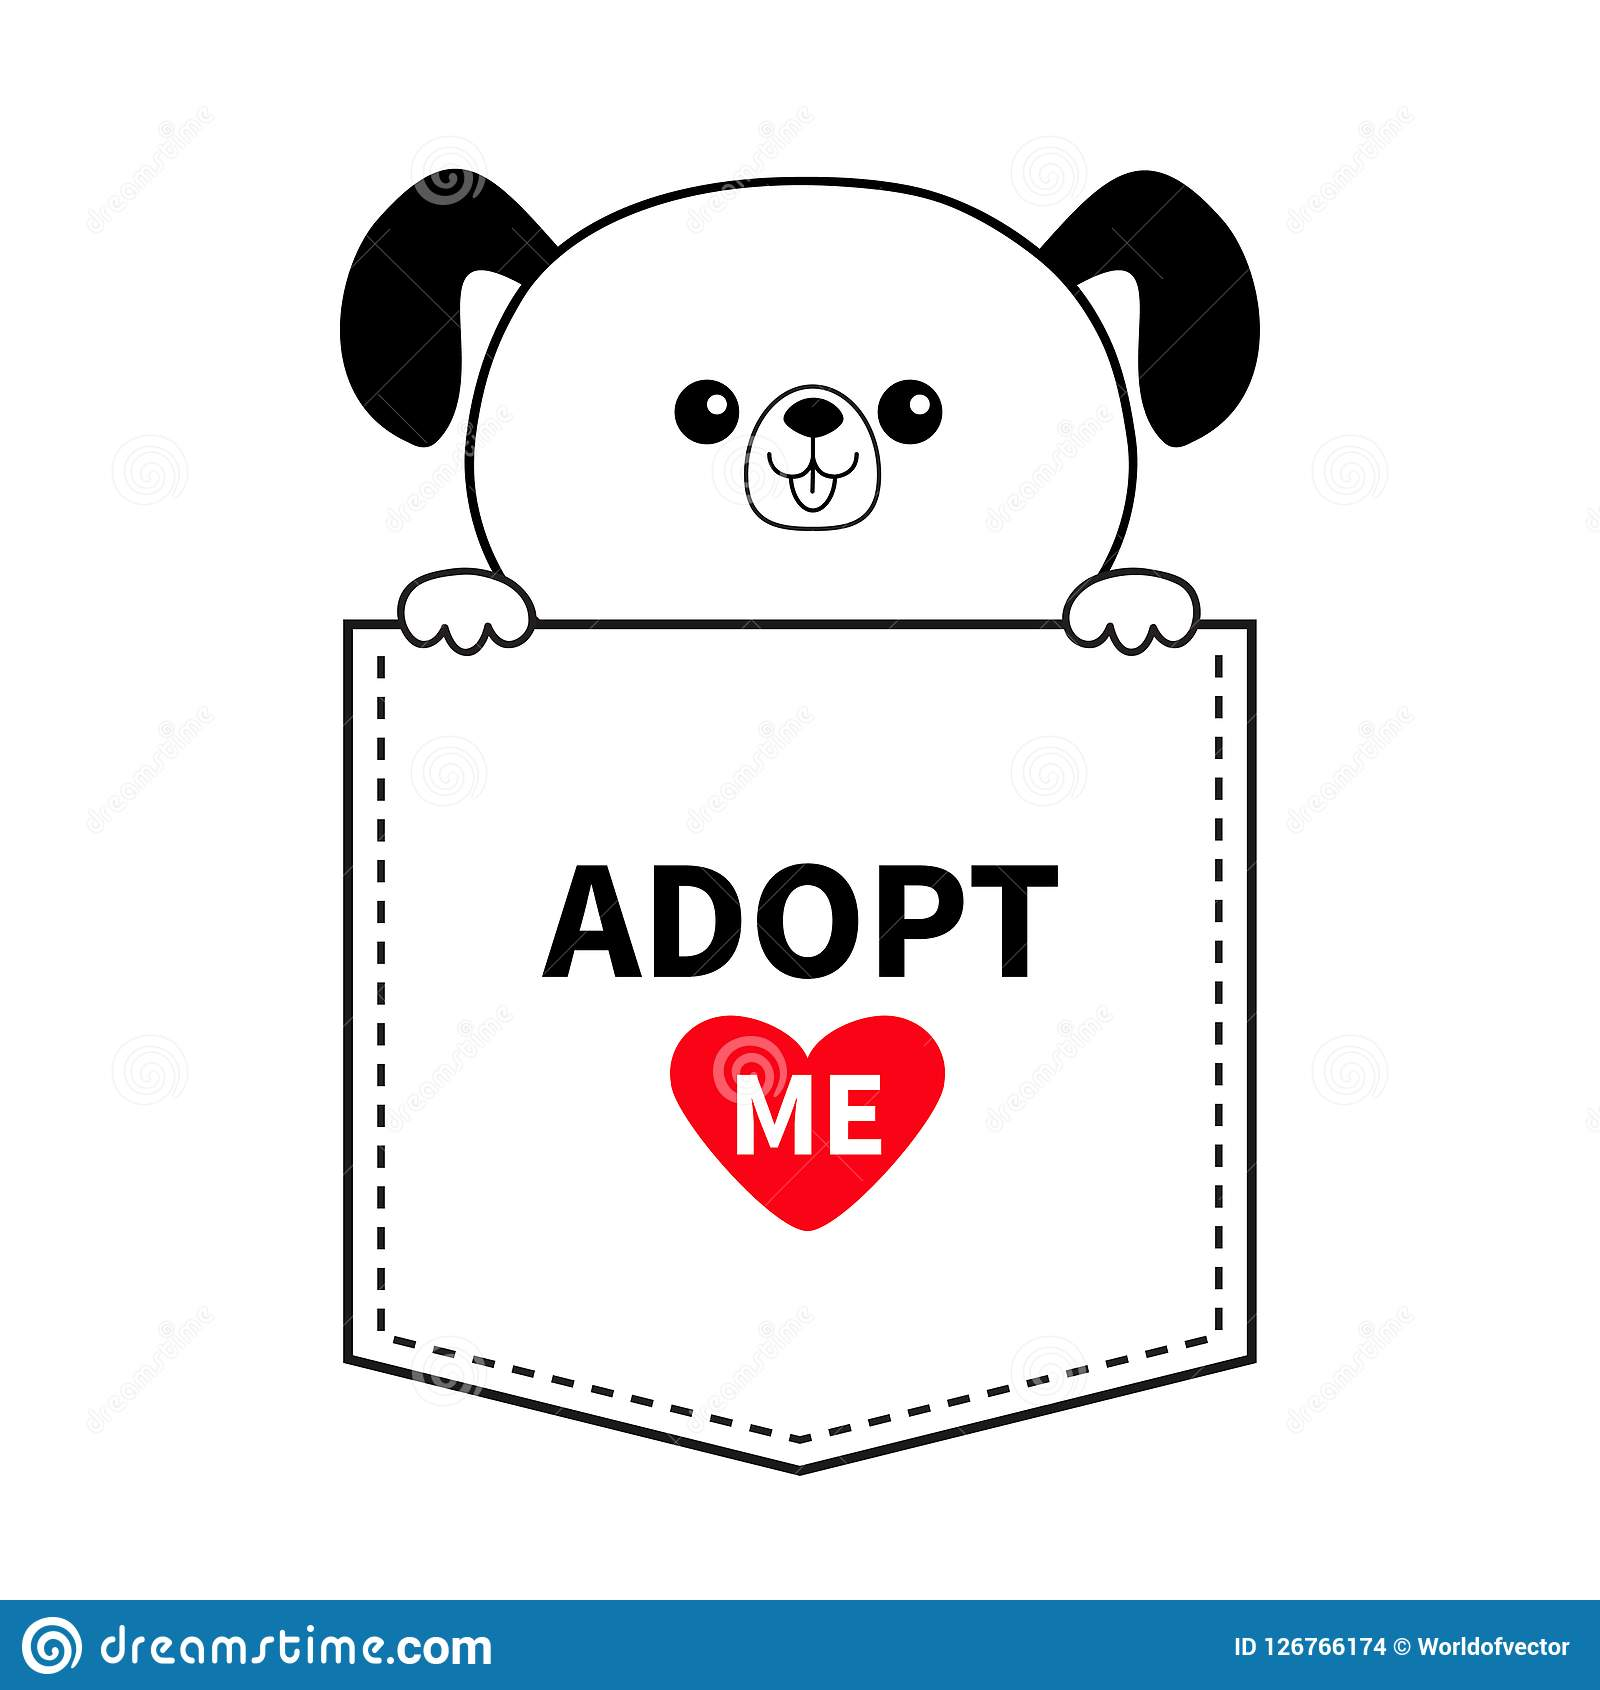 Adopt me. Dog in the pocket. Holding hands. Red heart. Cute cartoon animals. Puppy pooch character. Dash line. Pet animal collecti. On. T-shirt design. Baby Stock Illustration